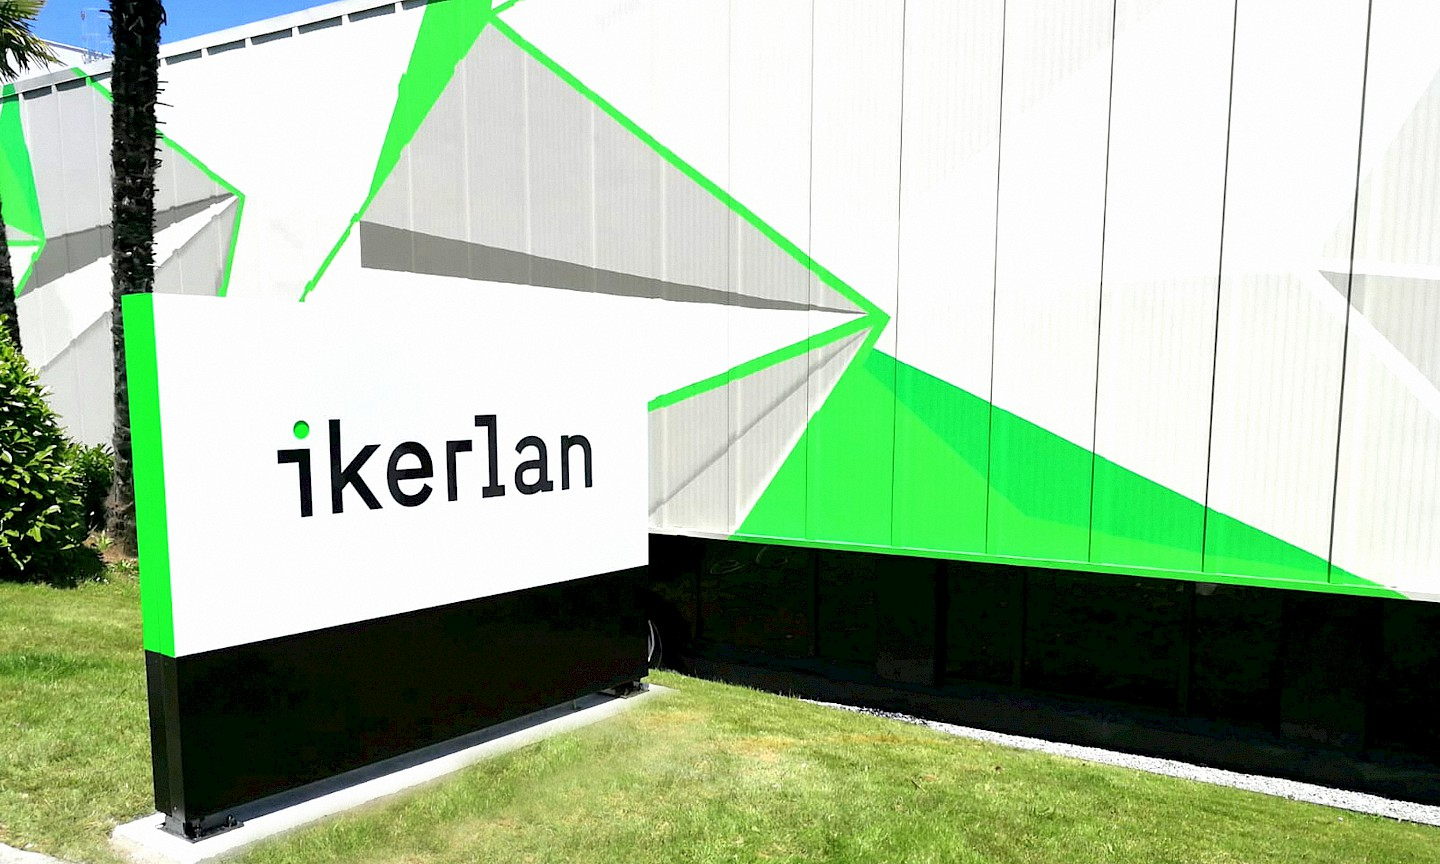 technology move environment_16 design ikerlan branding